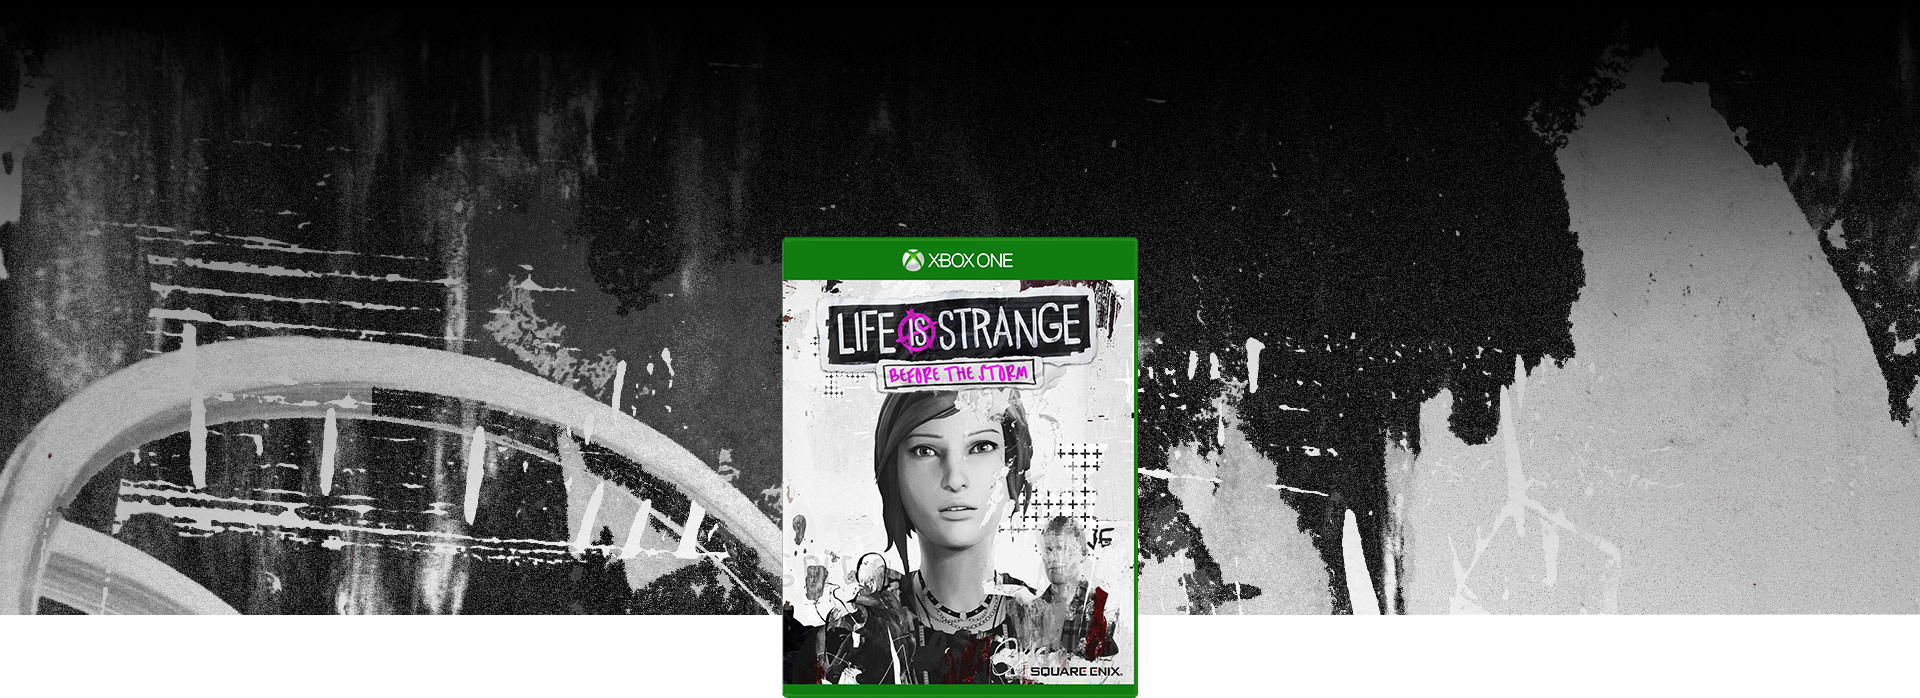 Life is Strange: Before the Storm boxshot. Scratched-out collage in the background